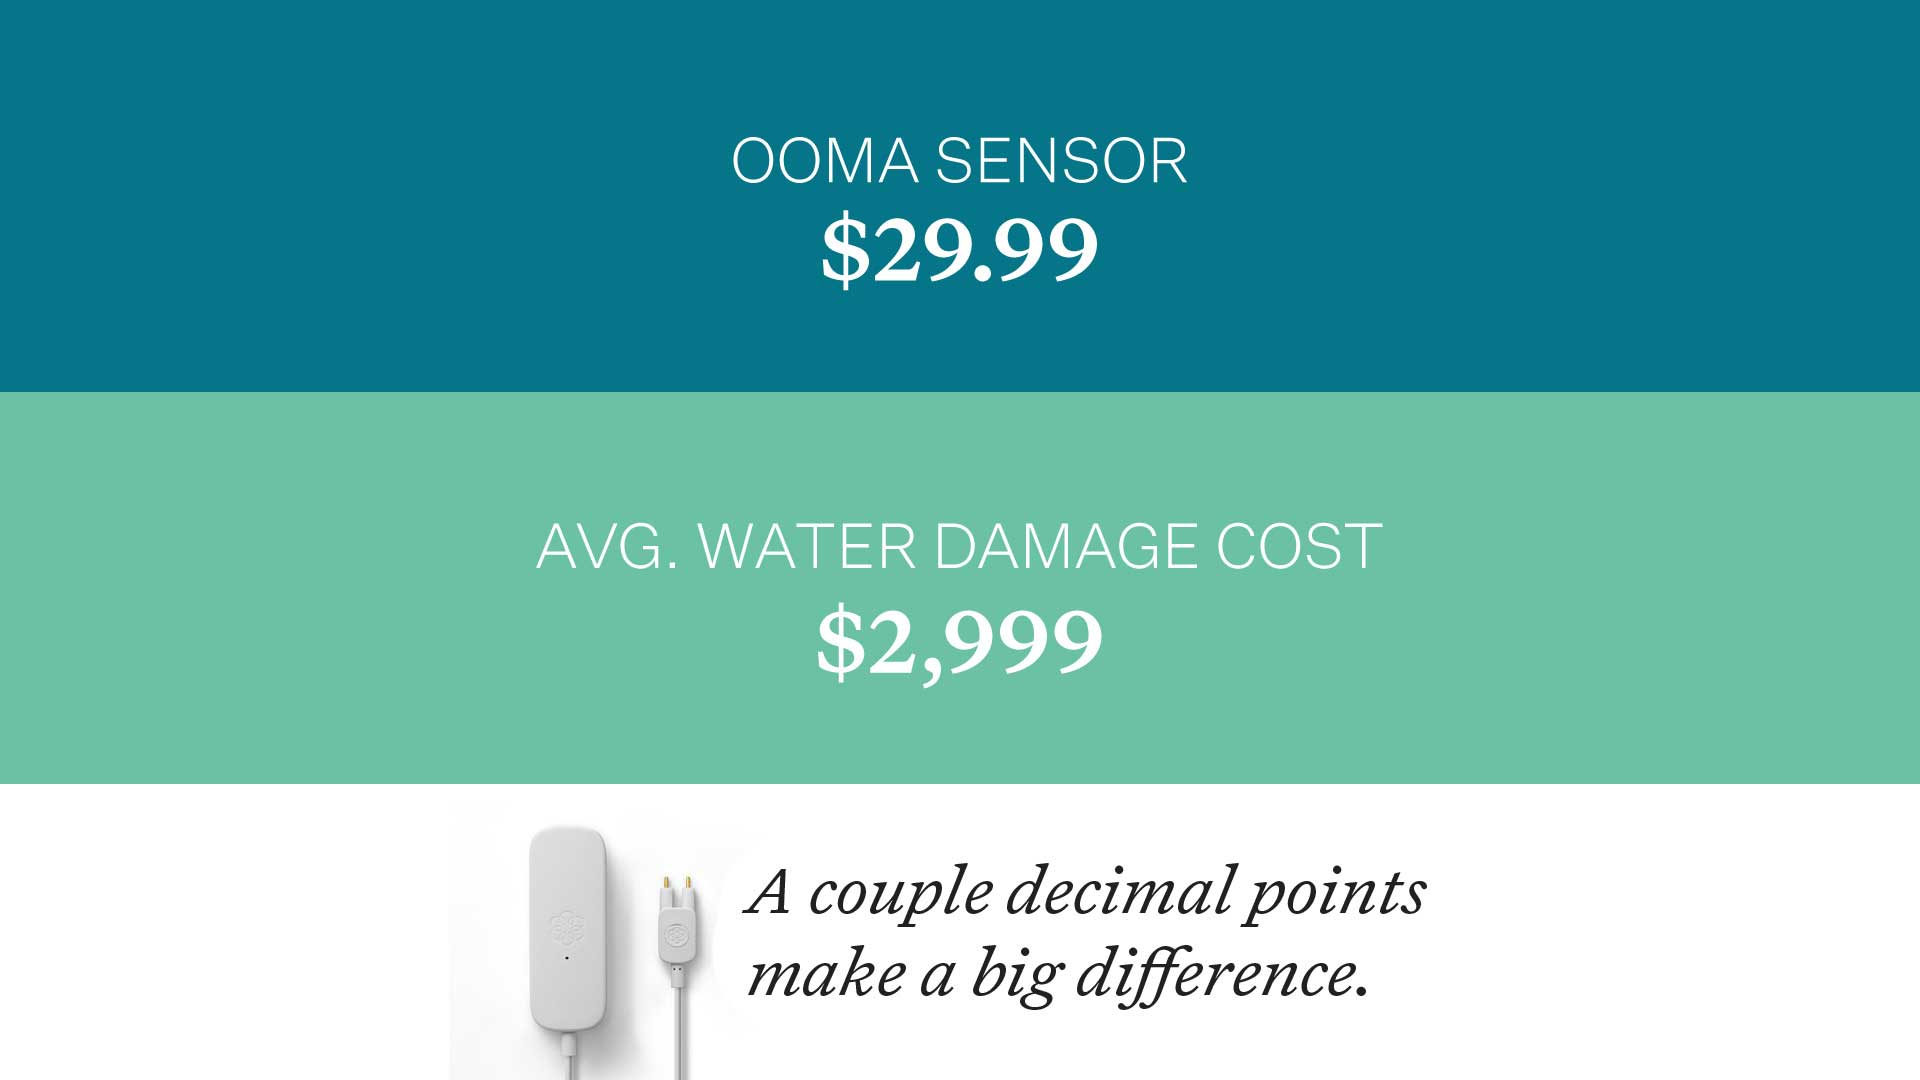 Average water damage cost is $2,999